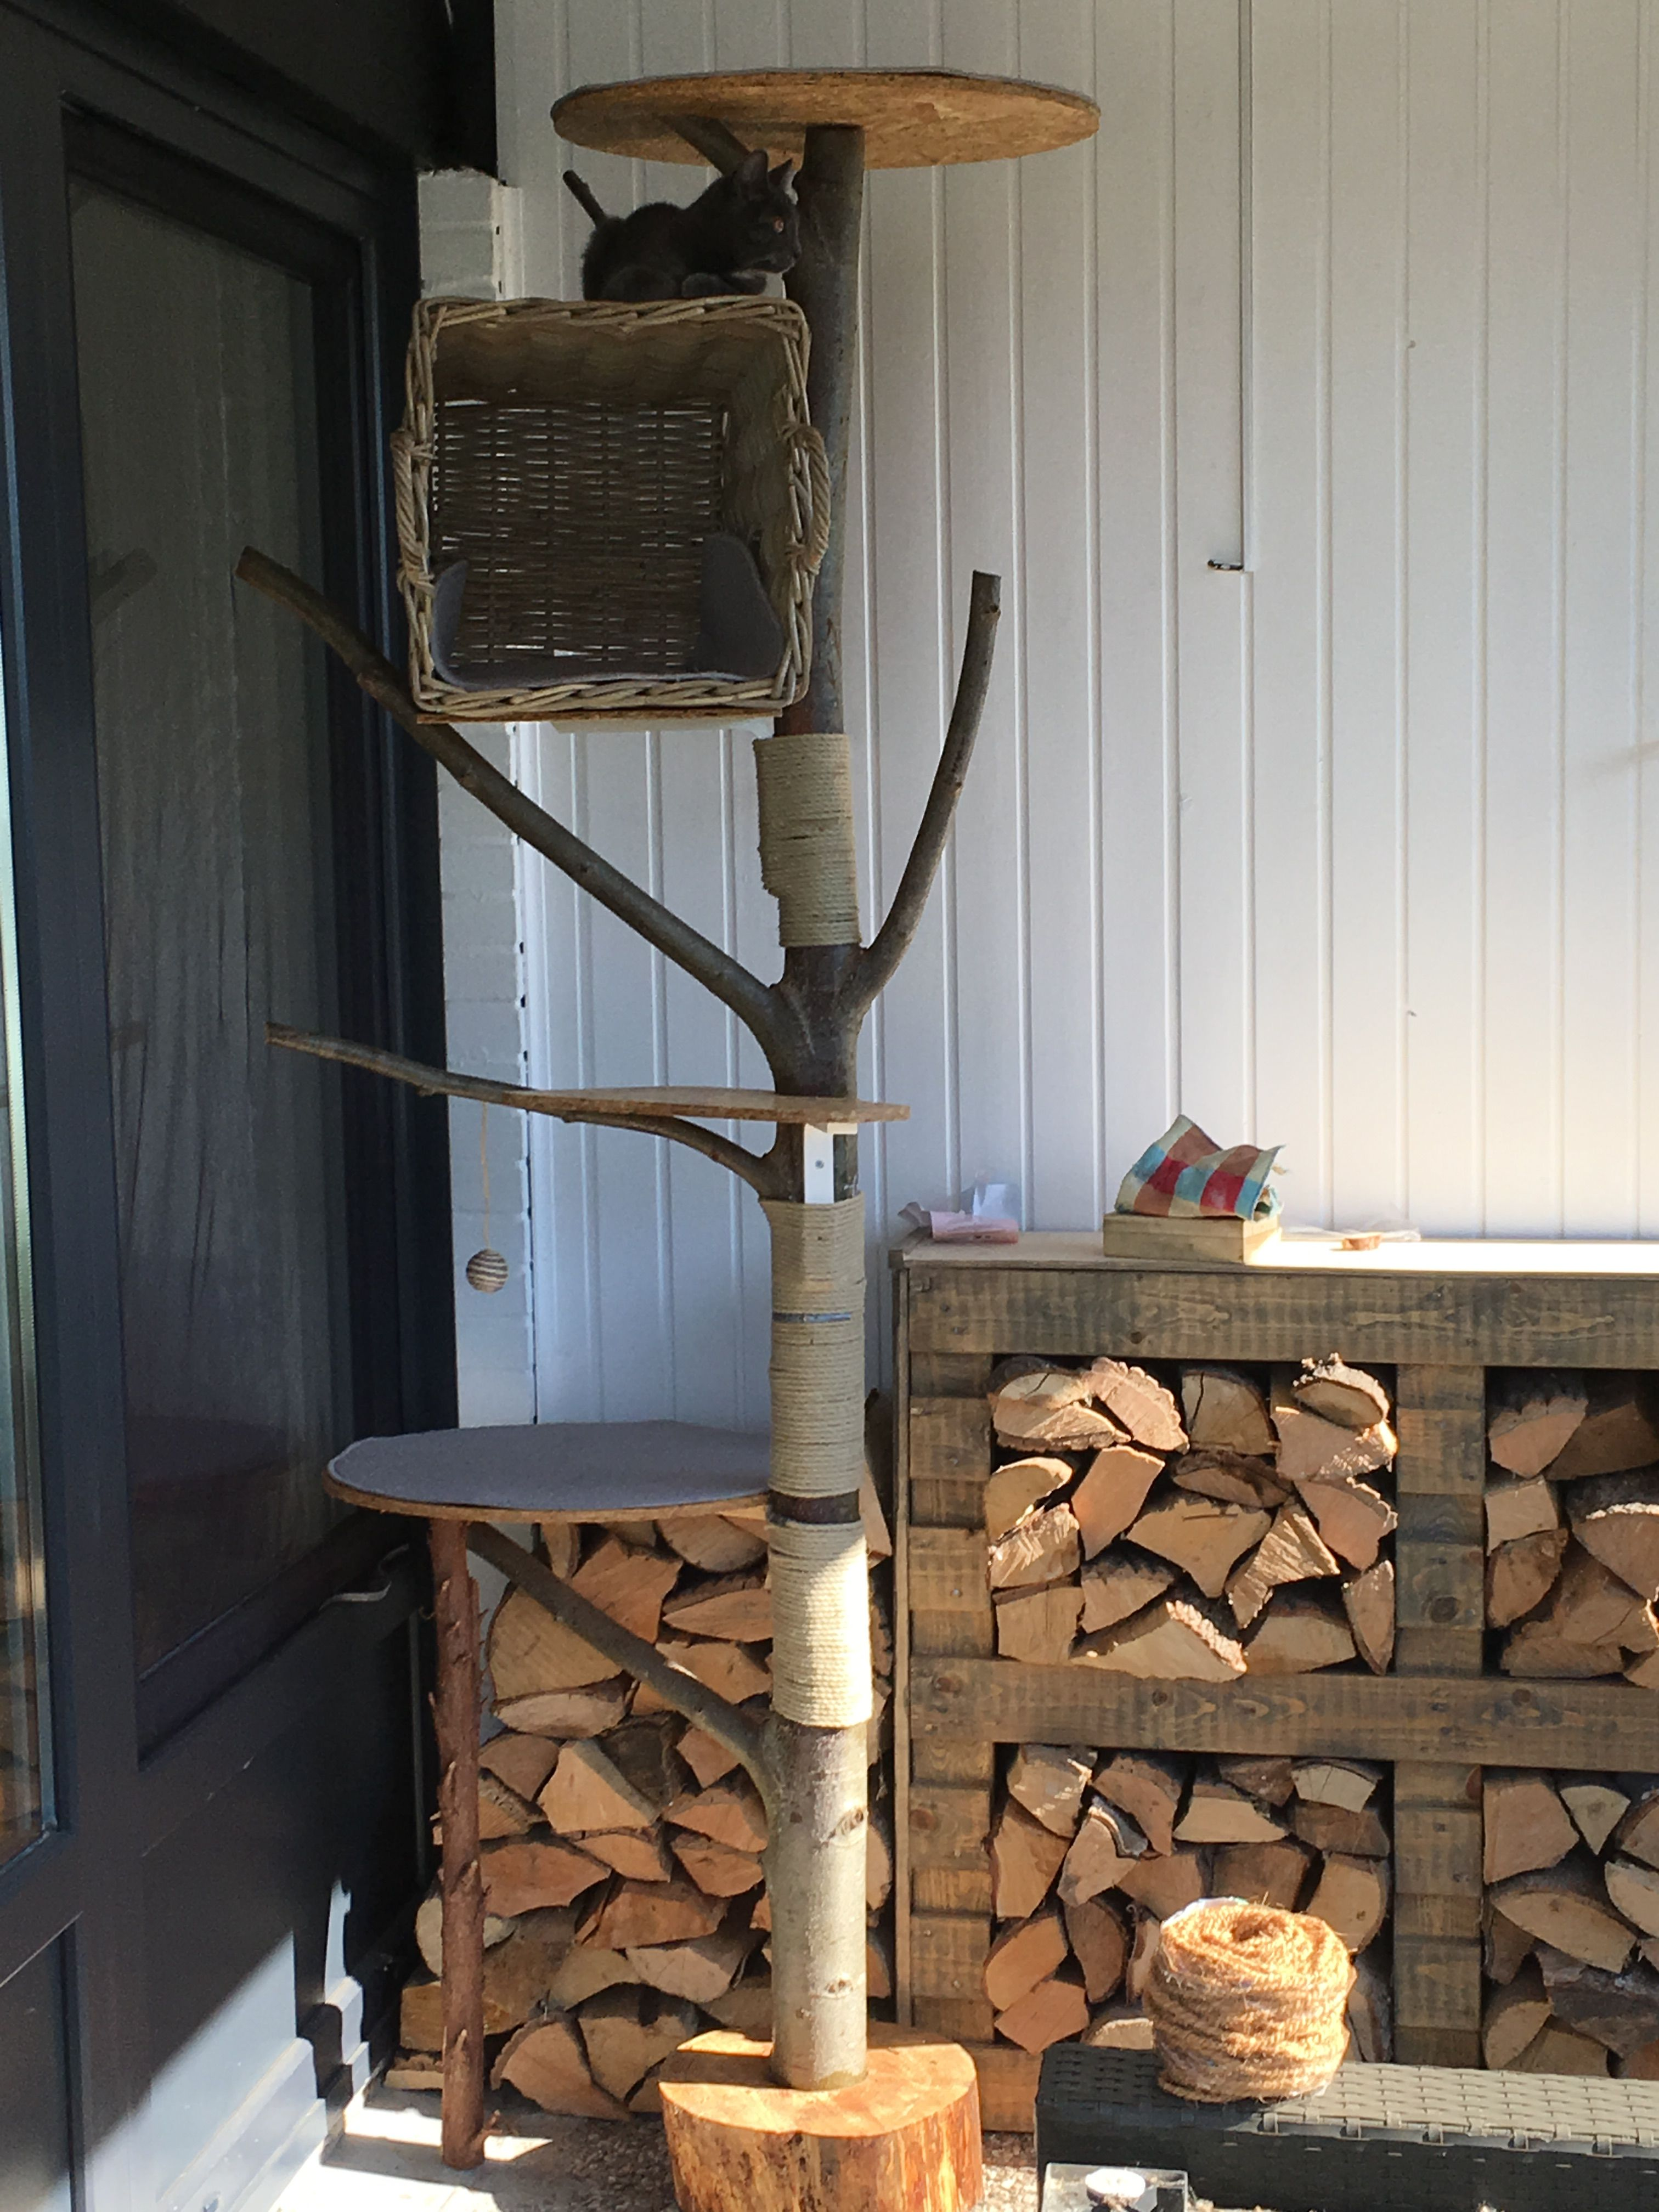 outdoor kratzbaum diy | katzen | pinterest | cats, cat enclosure und